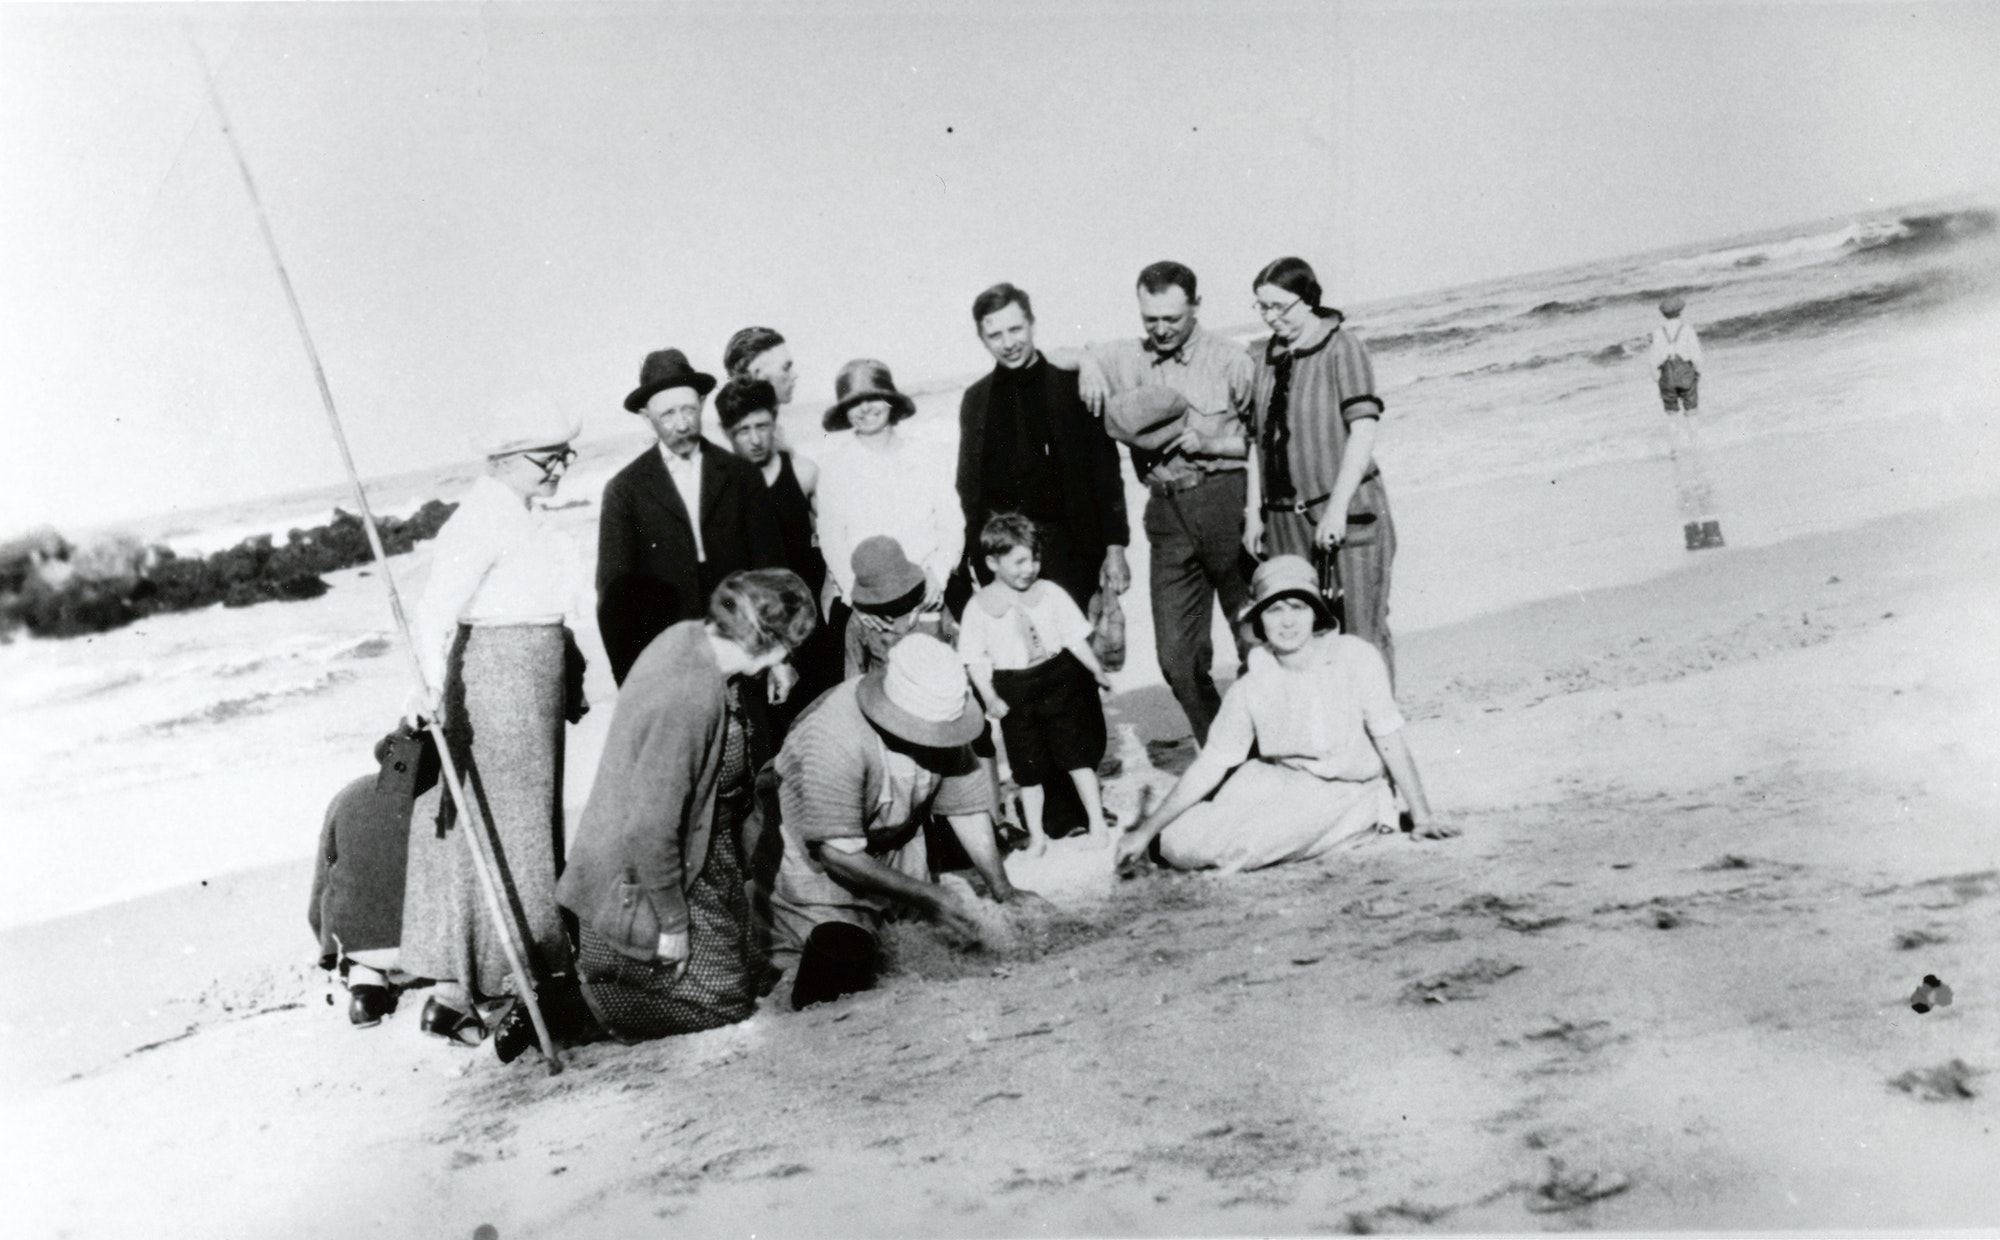 historical photo of a group of people at the inlet on the beach from 1920s or 1930s